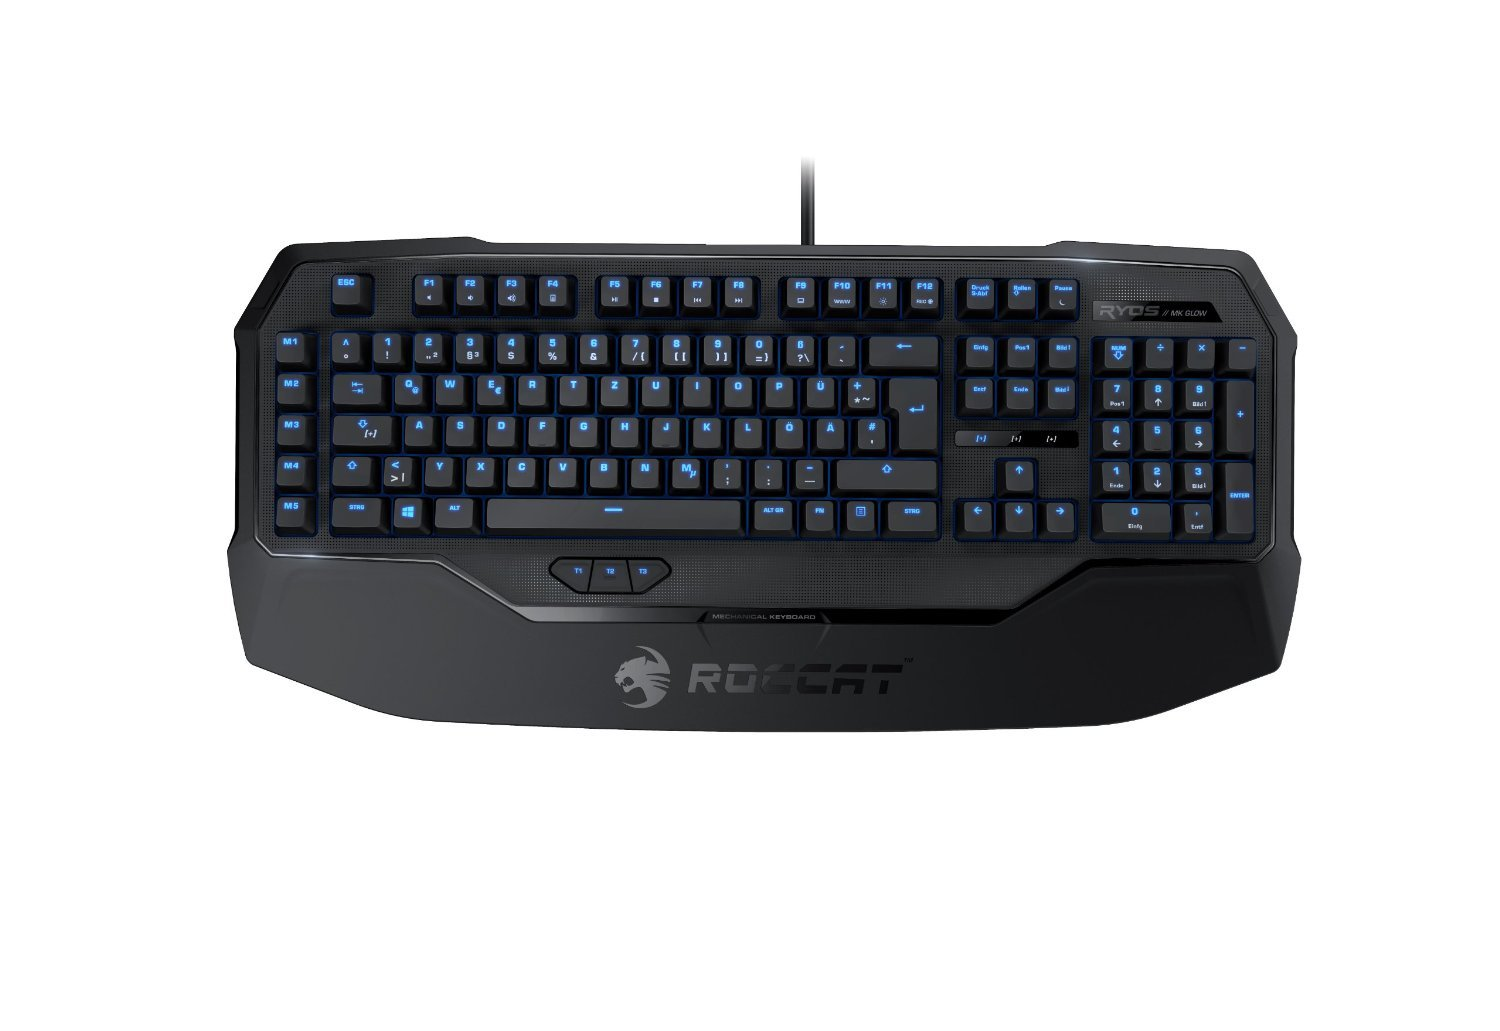 Amazon mechanical keyboard - Amazon Com Roccat Ryos Mk Glow Illuminated Mechanical Gaming Keyboard Black Cherry Mx Key Switch Computers Accessories